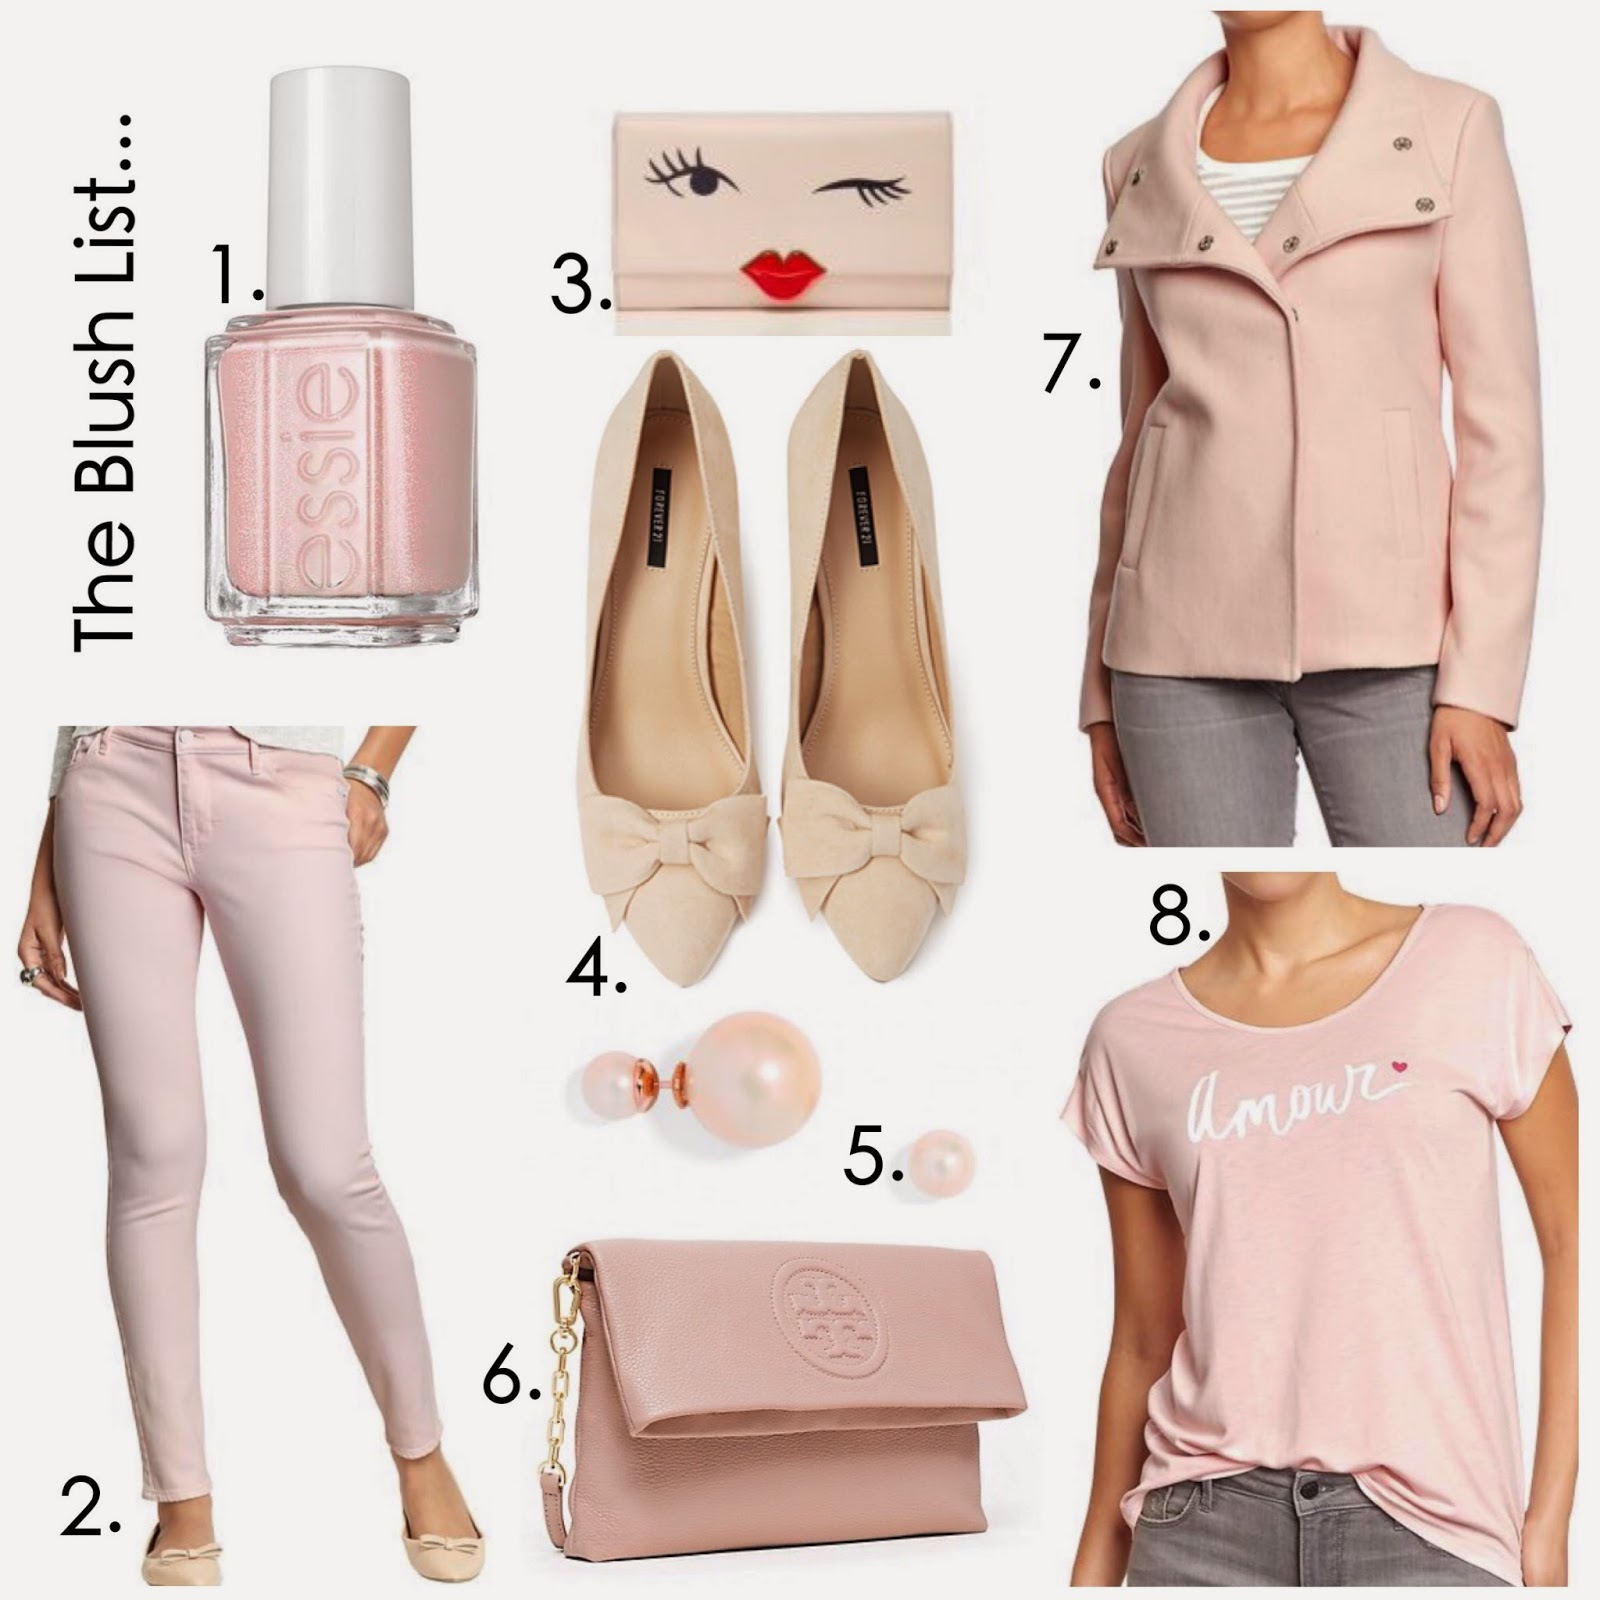 The Blush list, cute blush items collage, old navy blush tee, old navy blush skinny jeans, blush coat, blush bow pumps, forever 21 bow pumps, baublebar earrings pearl, tory burch blush clutch, kate spade wink clutch, san diego style blogger, san diego fashion blogger, spring fashion 2015, spring 2015 pastel collage